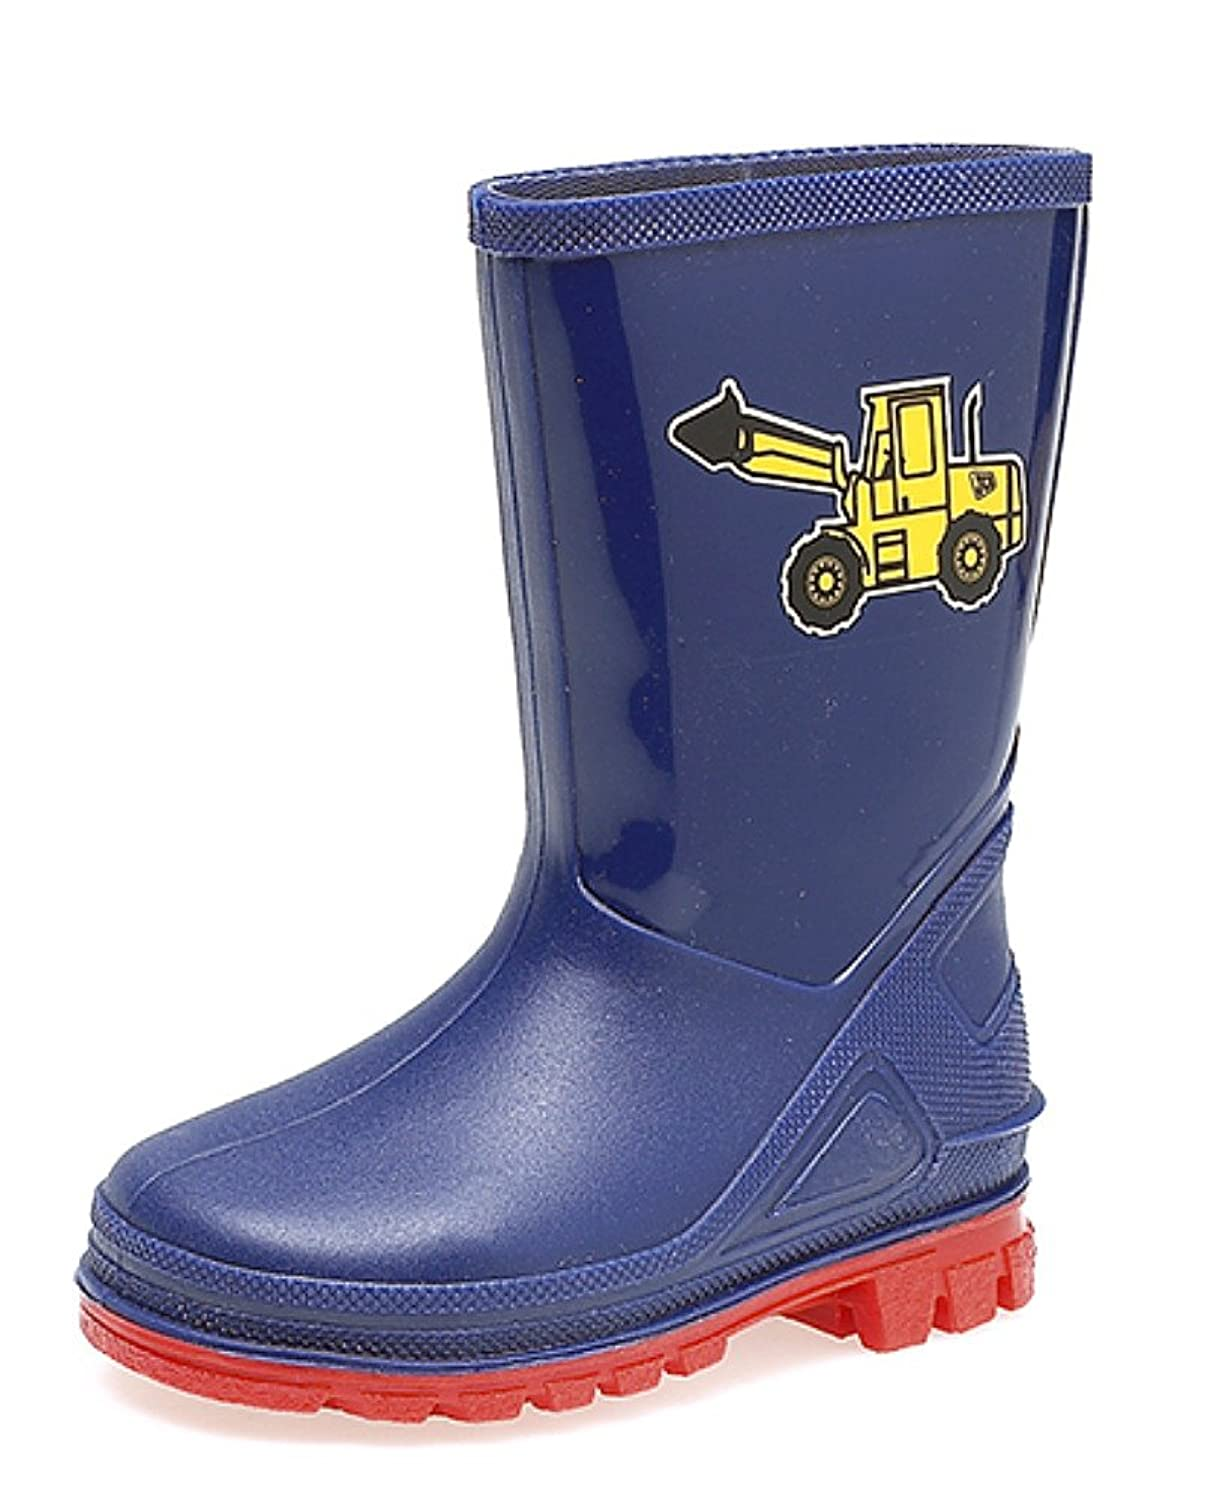 Thomas the Tank Engine Navy Blue Wellies UK 9 GoVFD0